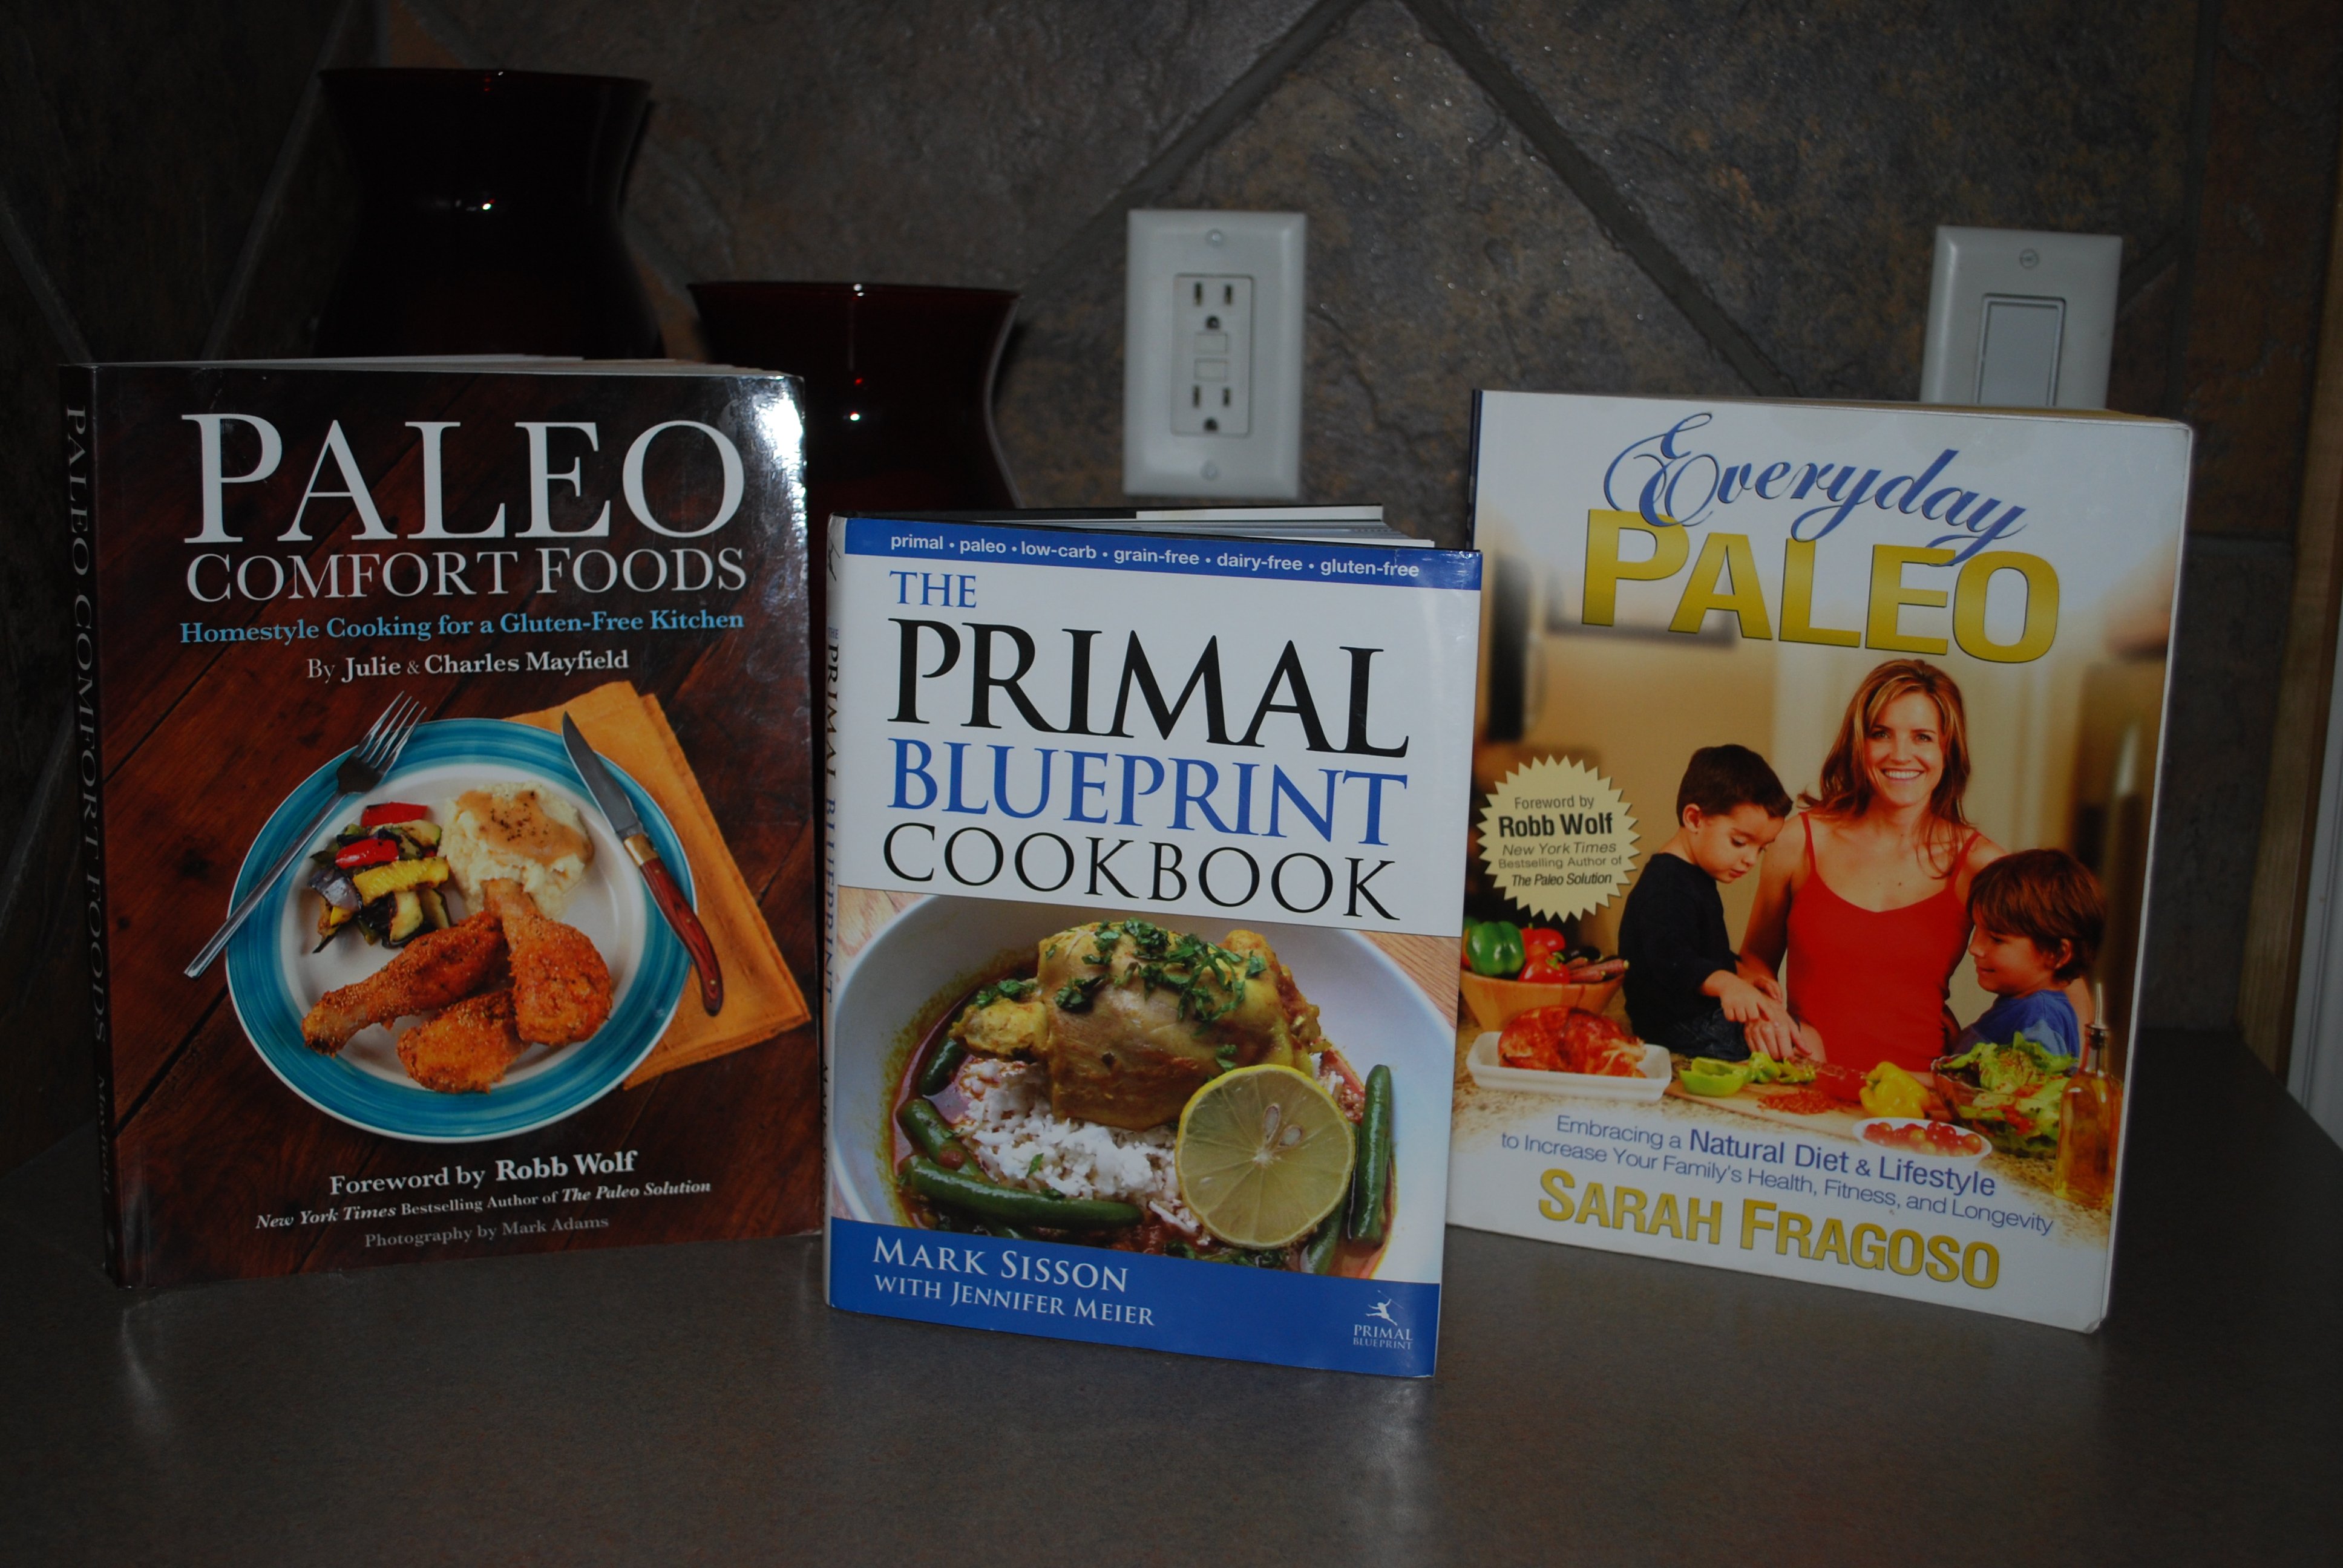 Going paleo part deux the food crunchy hot mama the other books are paleo comfort foods and the primal blueprint cookbook this last one was my first introduction to primal eating a friend got a signed malvernweather Gallery